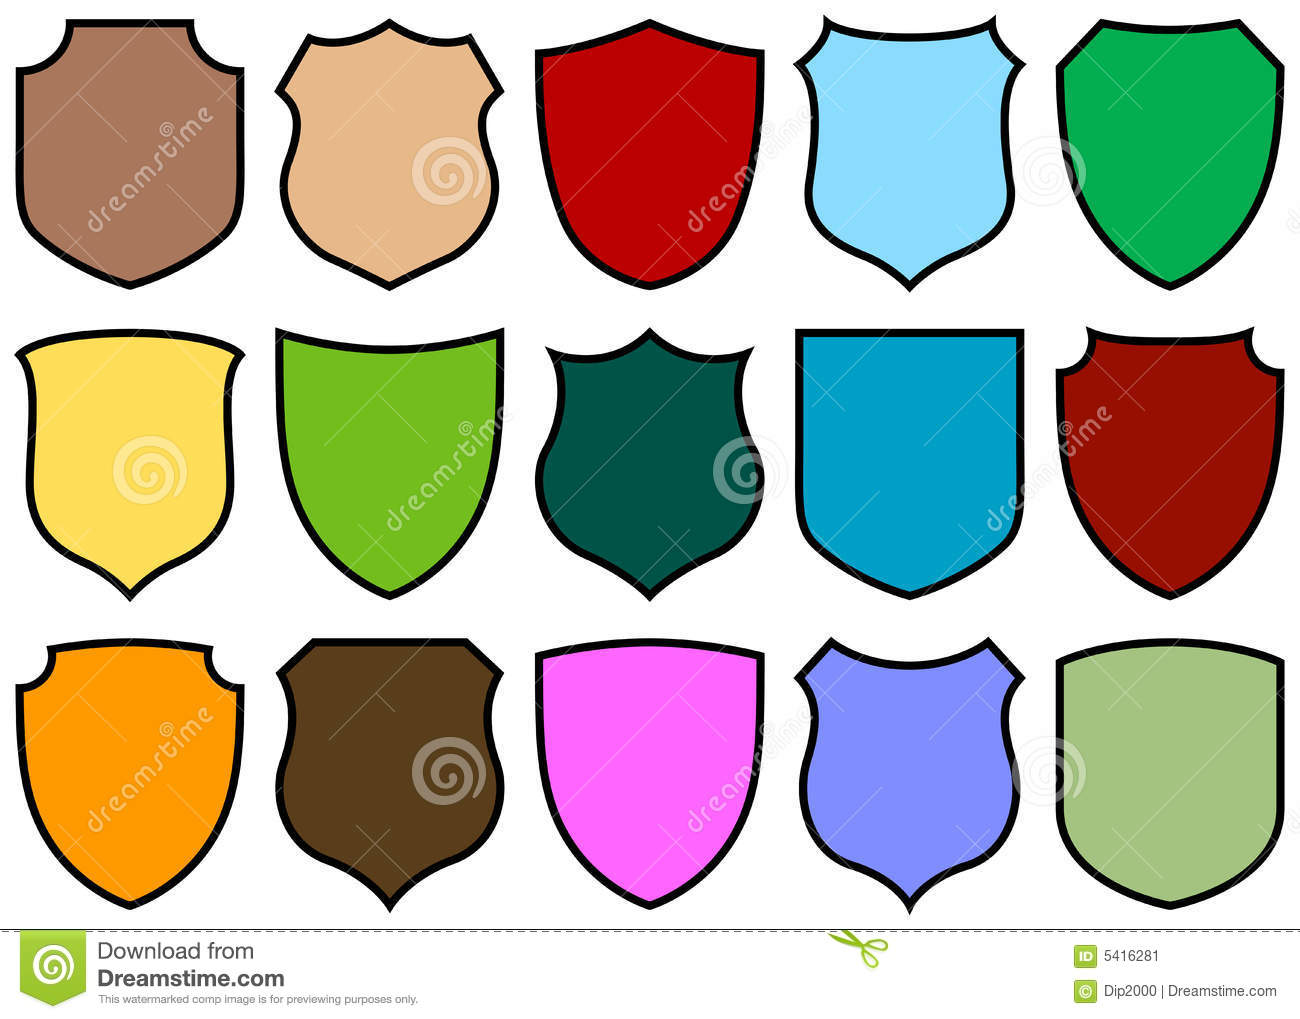 Shield design set royalty free stock photos image 5051988 - Shield Design Set Stock Image